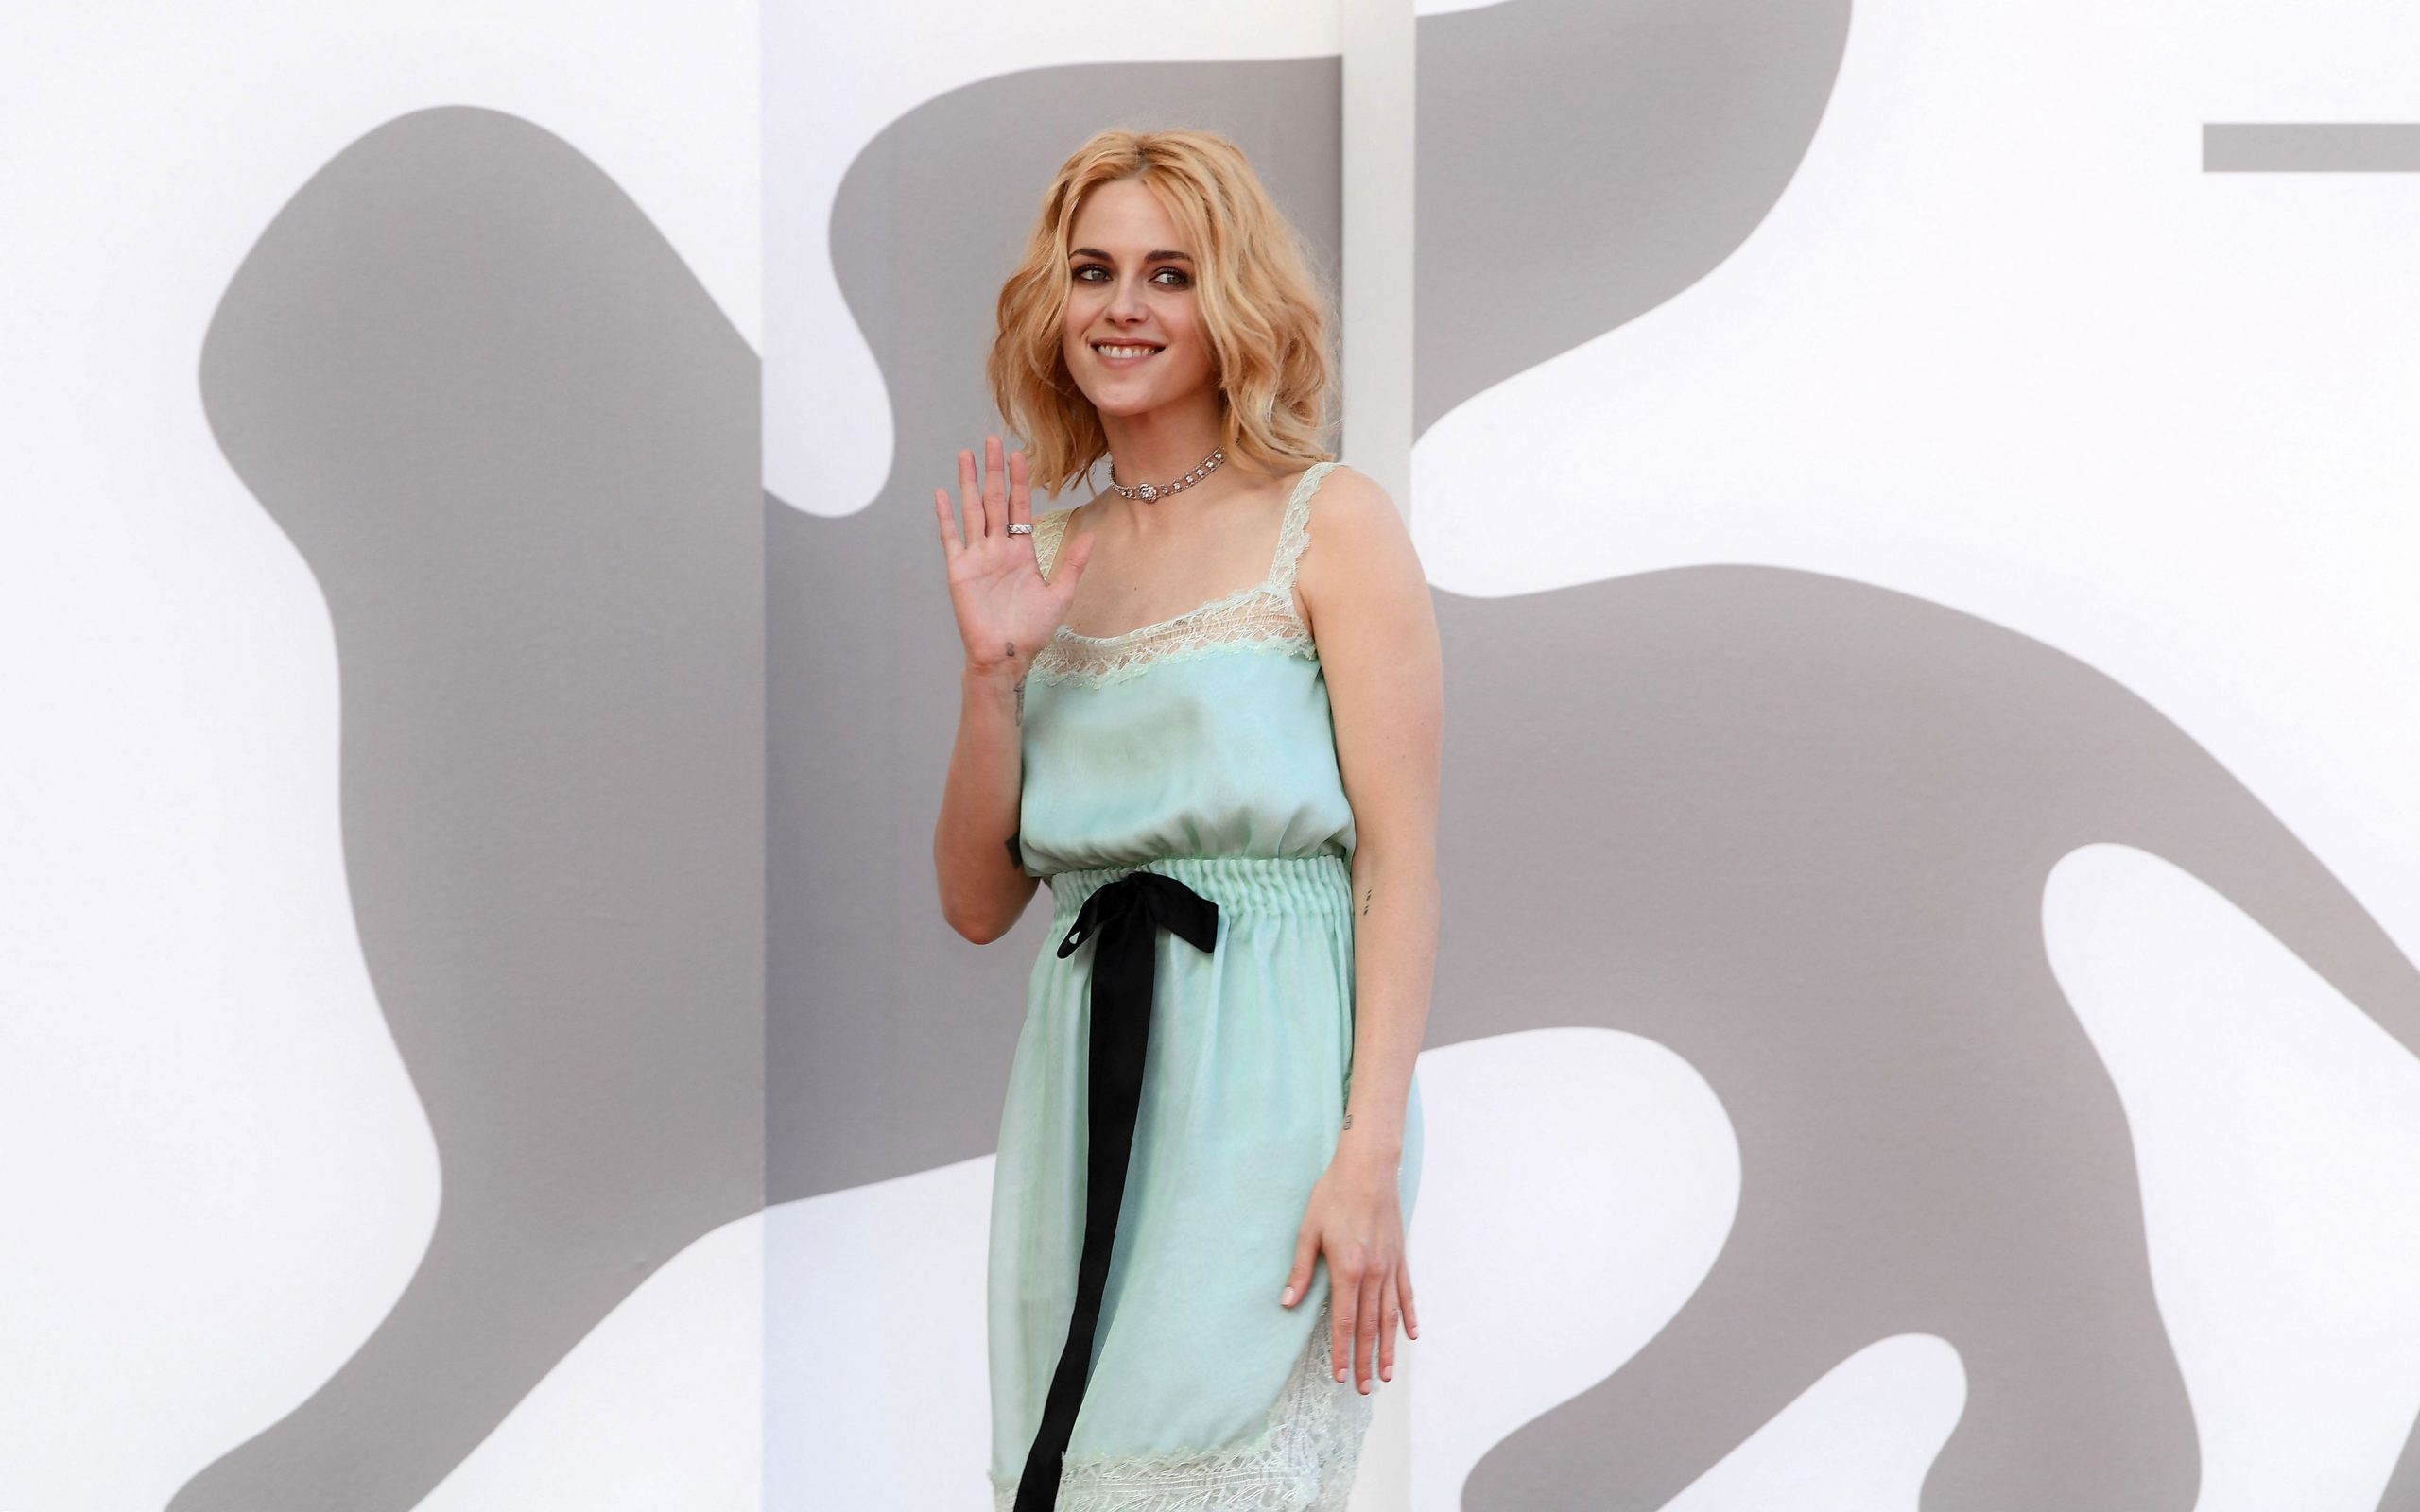 Venice Red Carpet 2021: The Best Celebrity Looks From the Film Festival